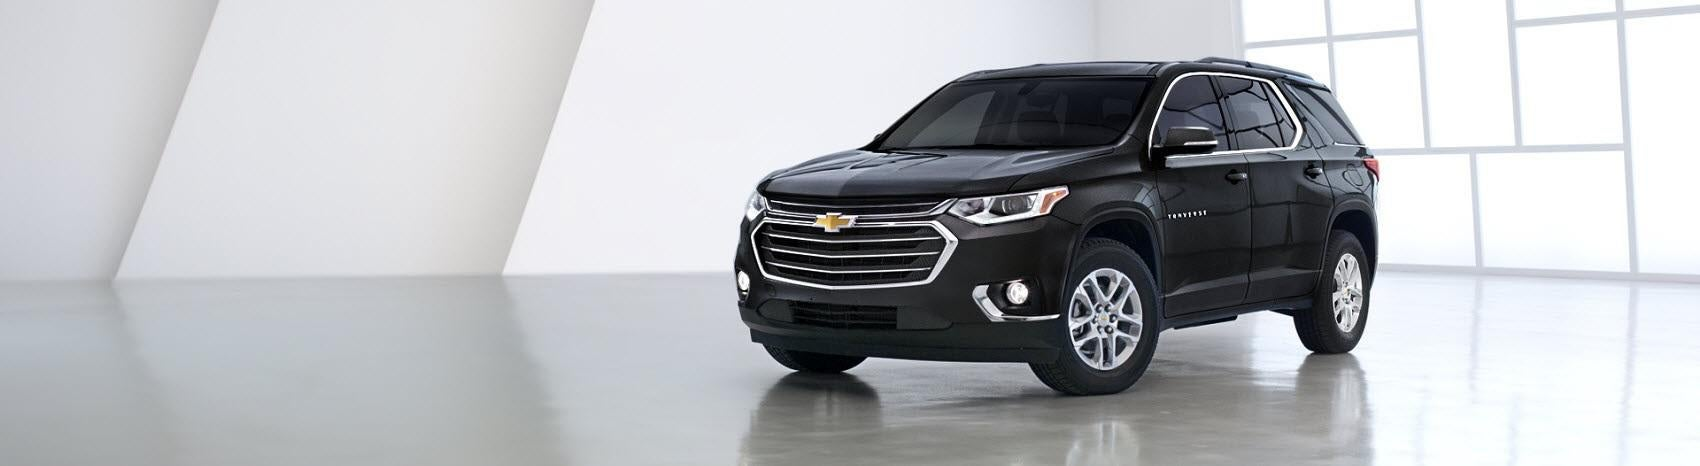 Used Chevy Traverse For Sale Near Me Andy Mohr Speedway Chevy